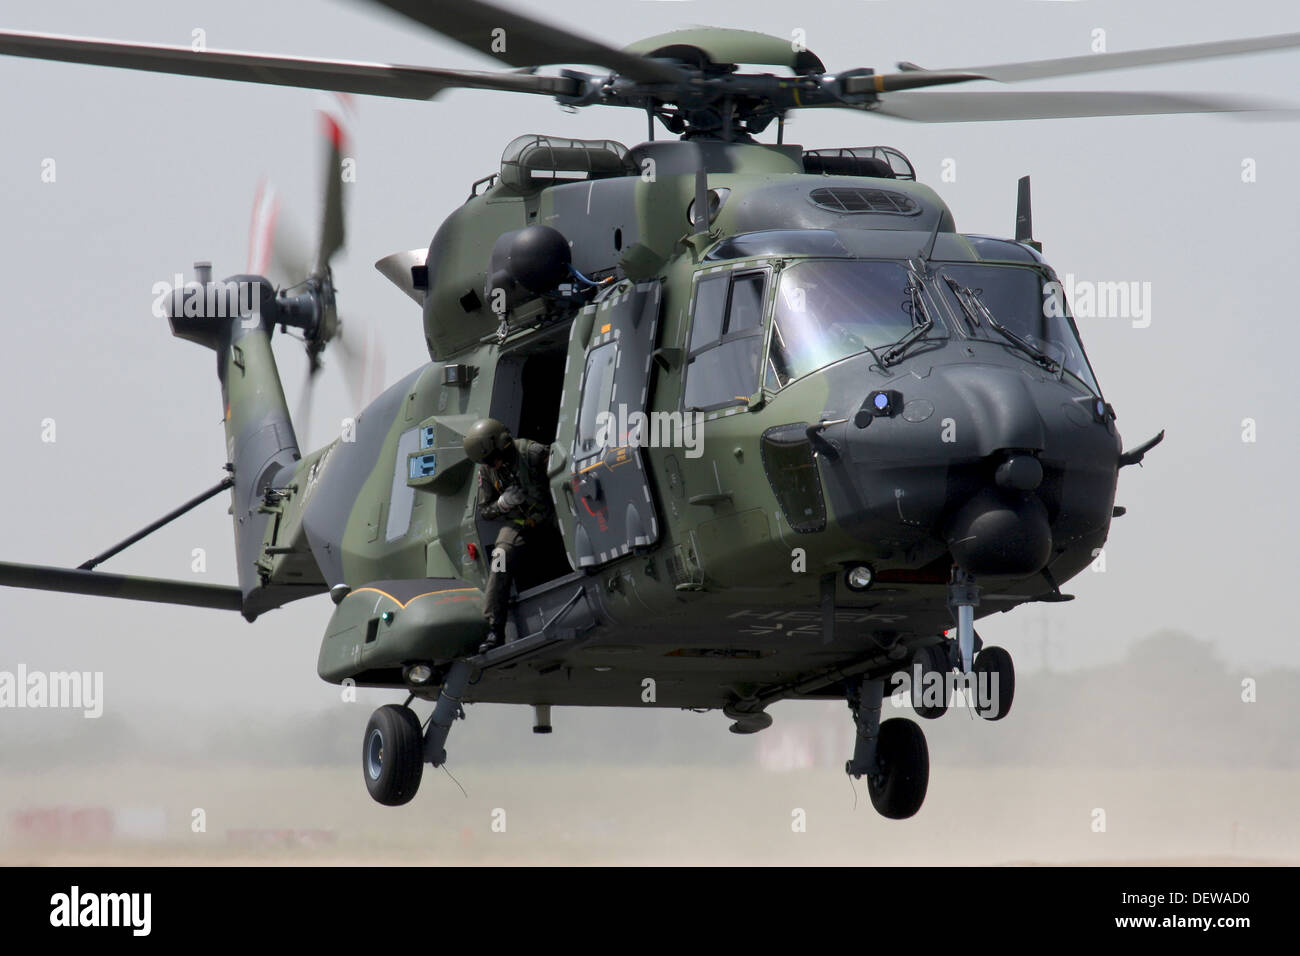 Military helicopter from German Army in action - Stock Image